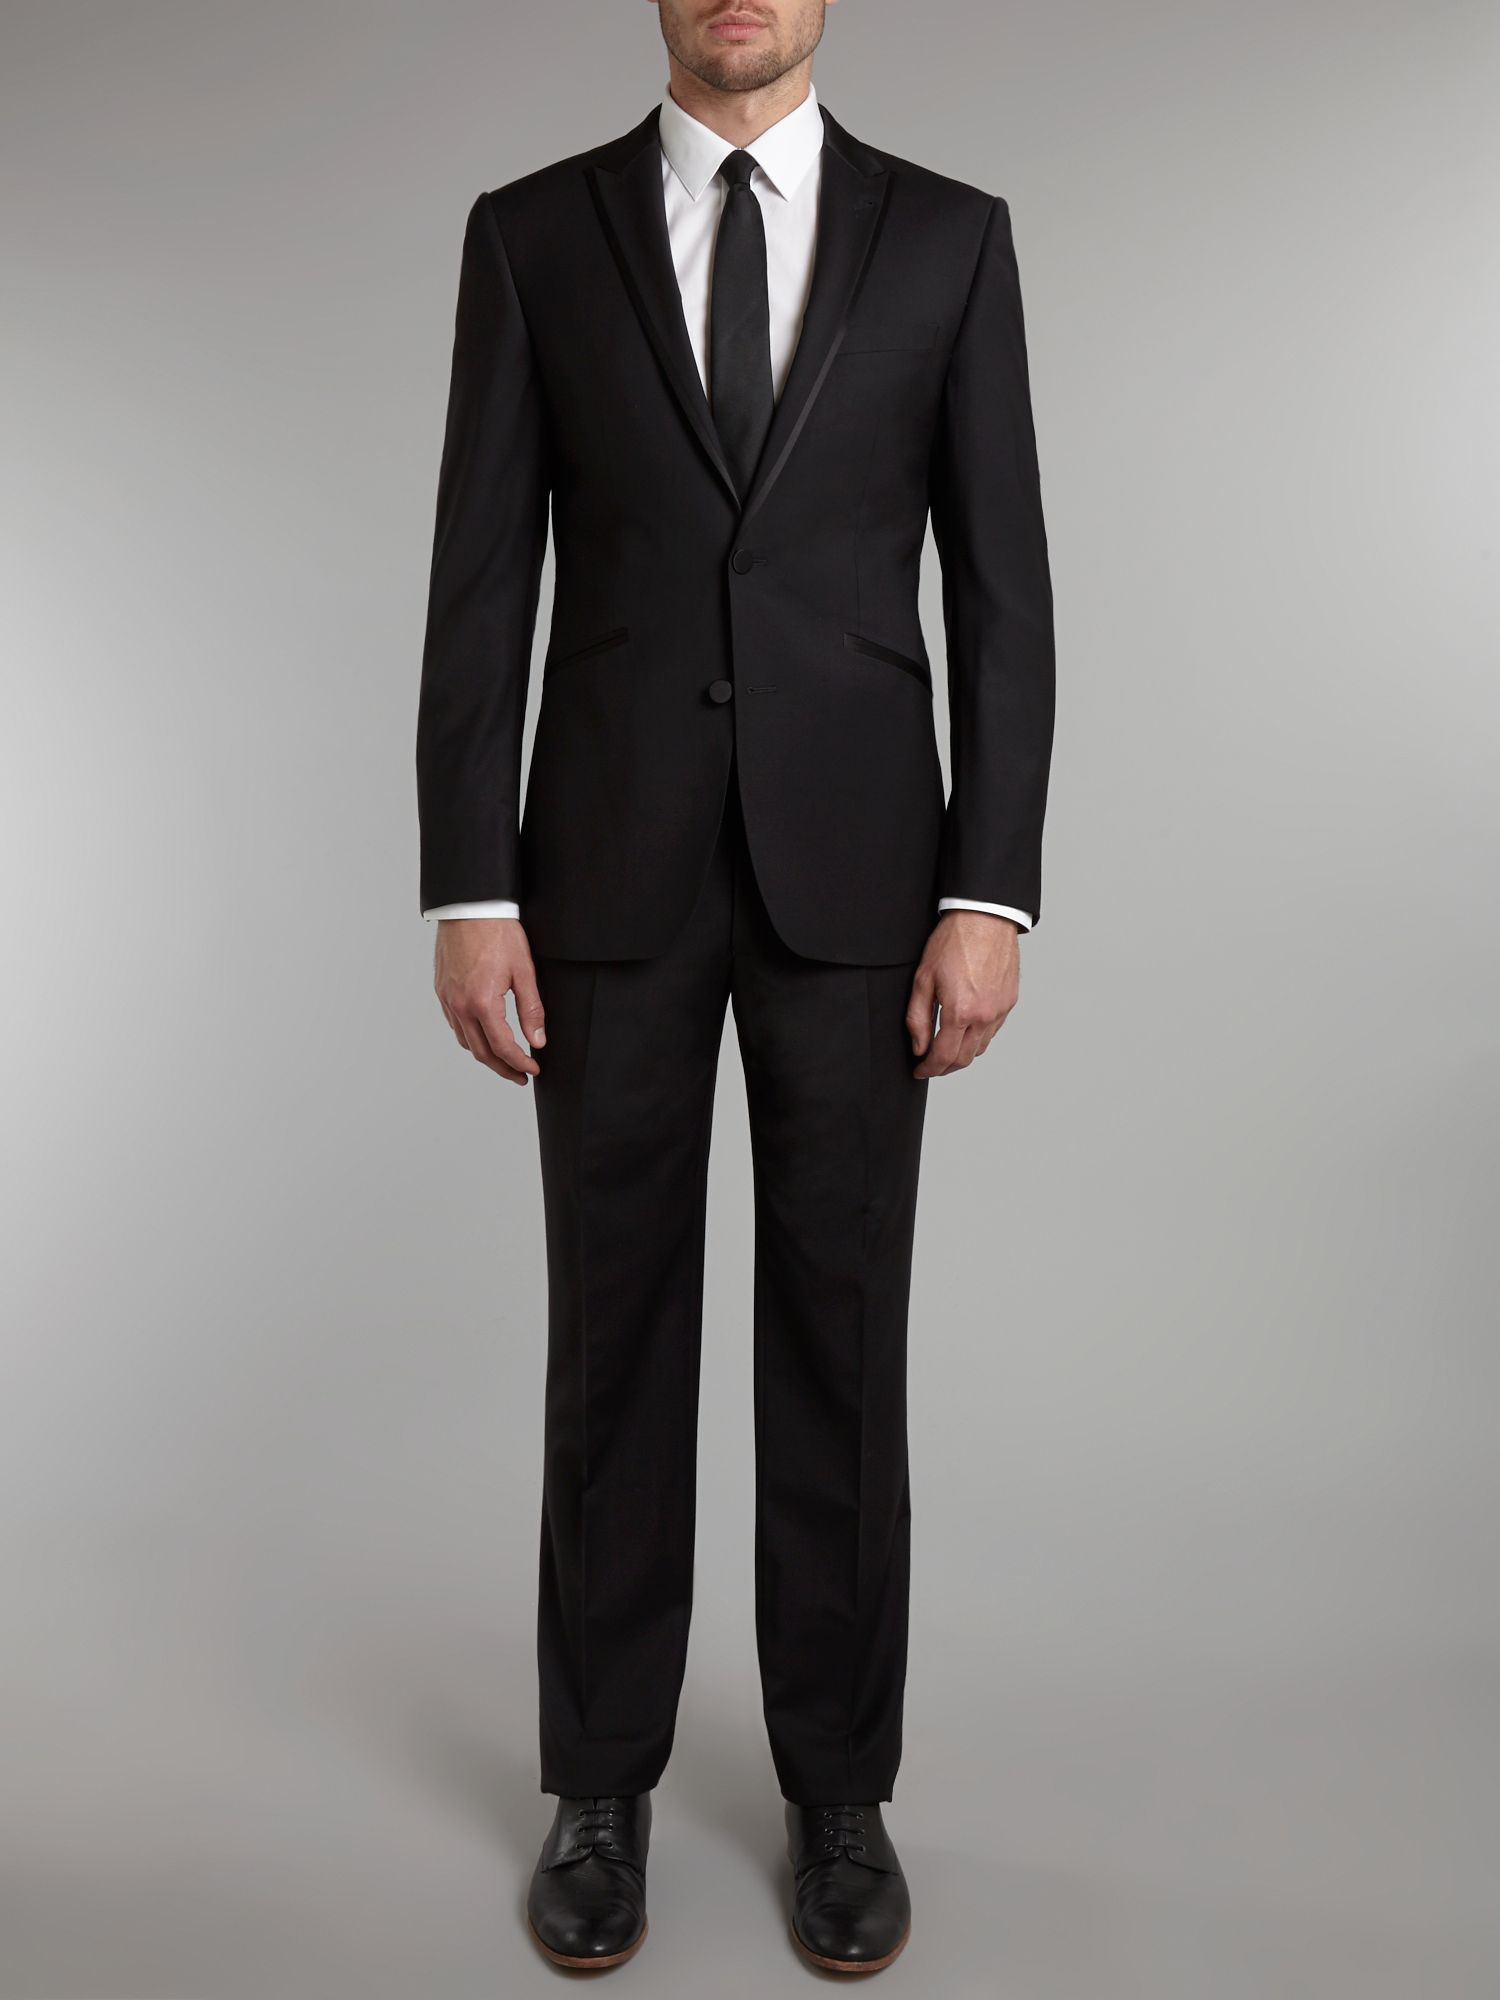 Satin edge slim fit dinner suit